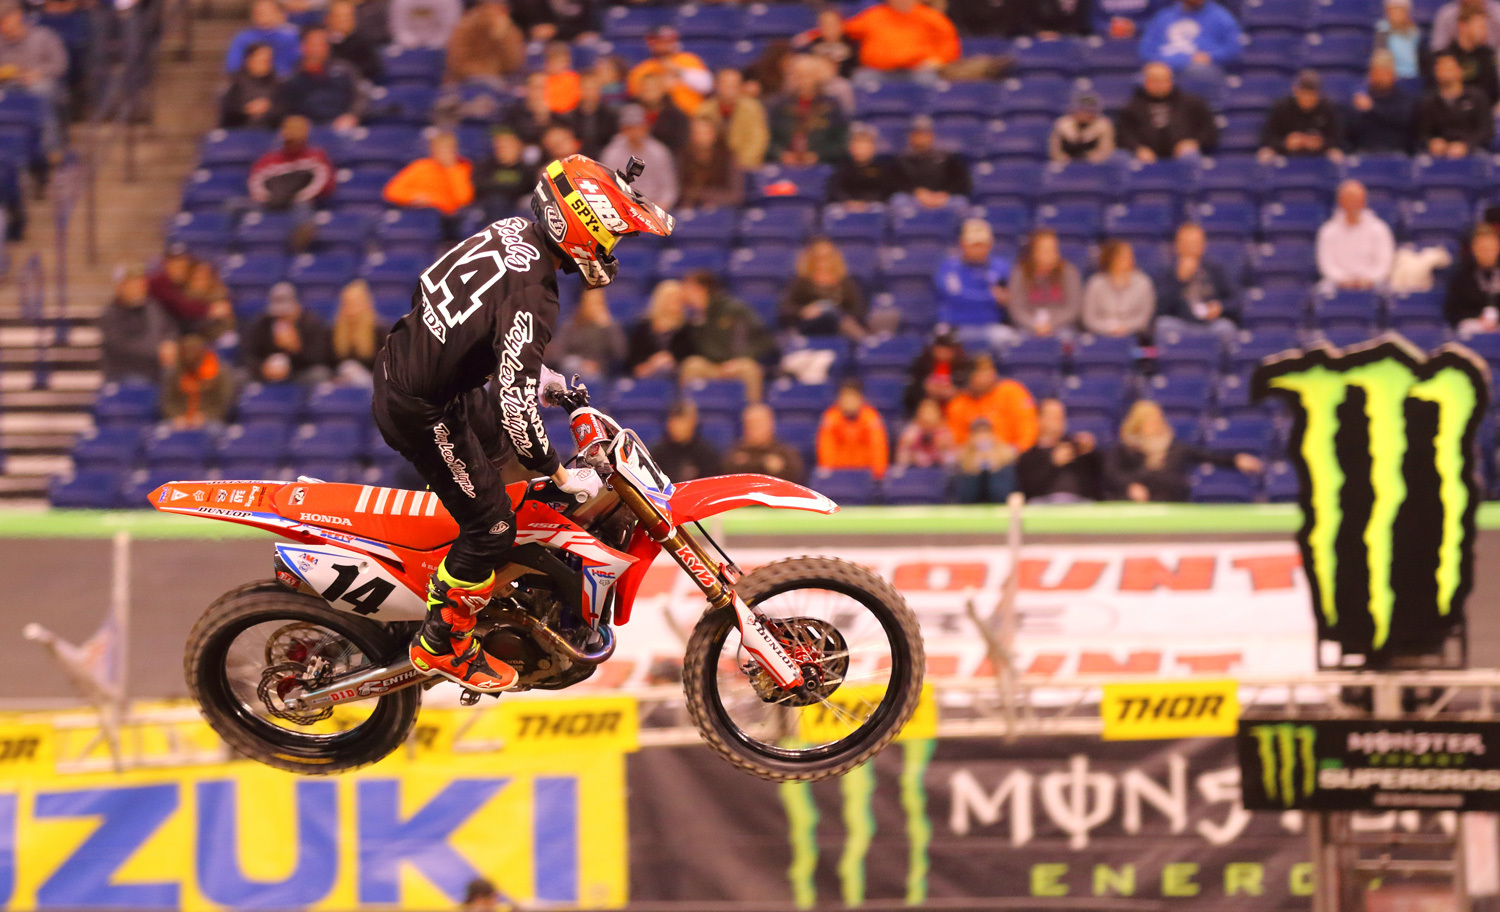 2017 Monster Energy Supercross Indianapolice_d0091546_08372163.jpg